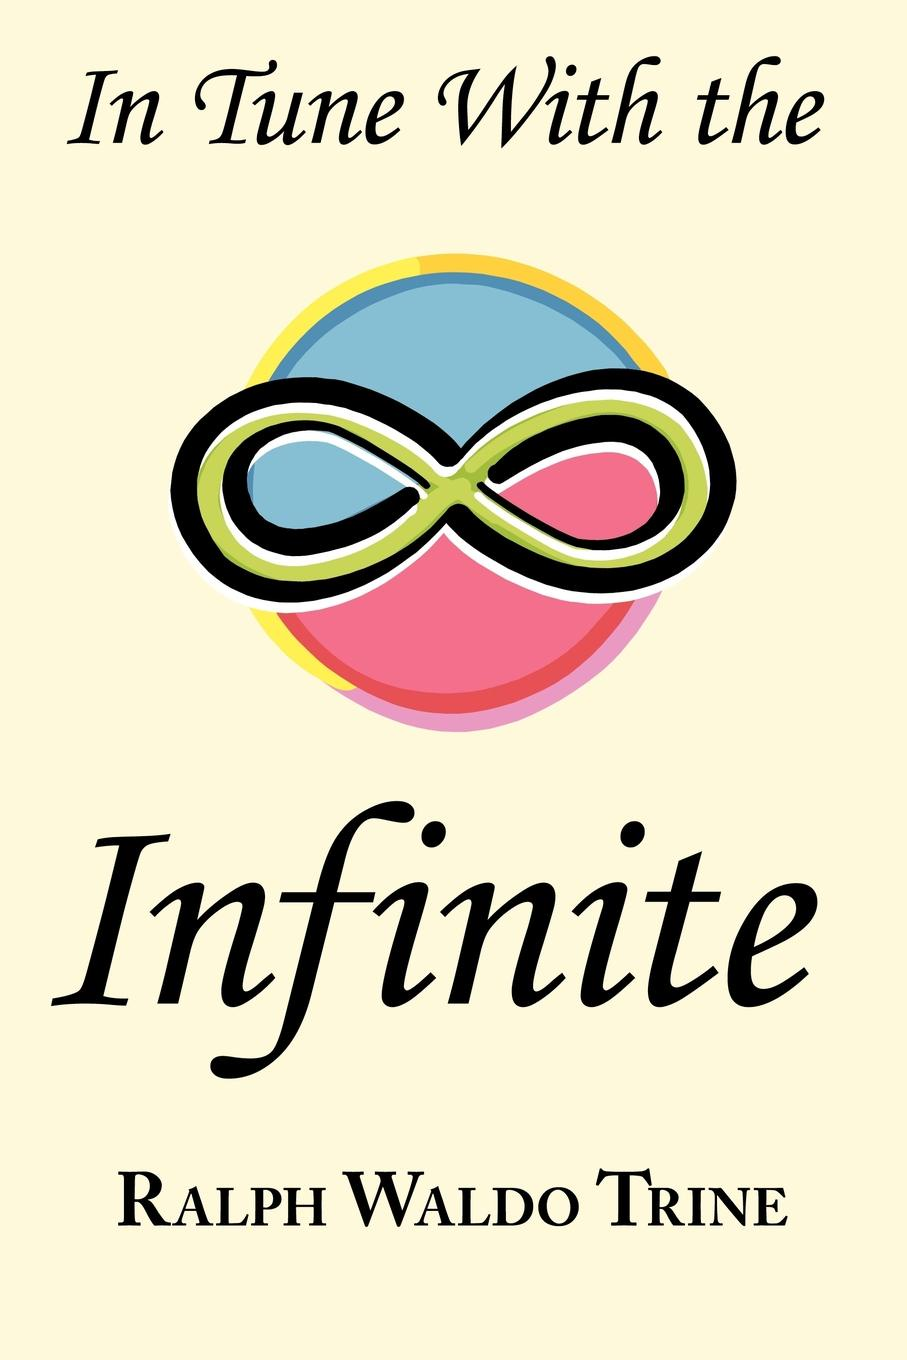 Ralph Waldo Trine In Tune with the Infinite. Ralph Waldo Trine.s Motivational Classic - Complete Original Text al trumpa love and grow rich 17 golden rules for your success original pack